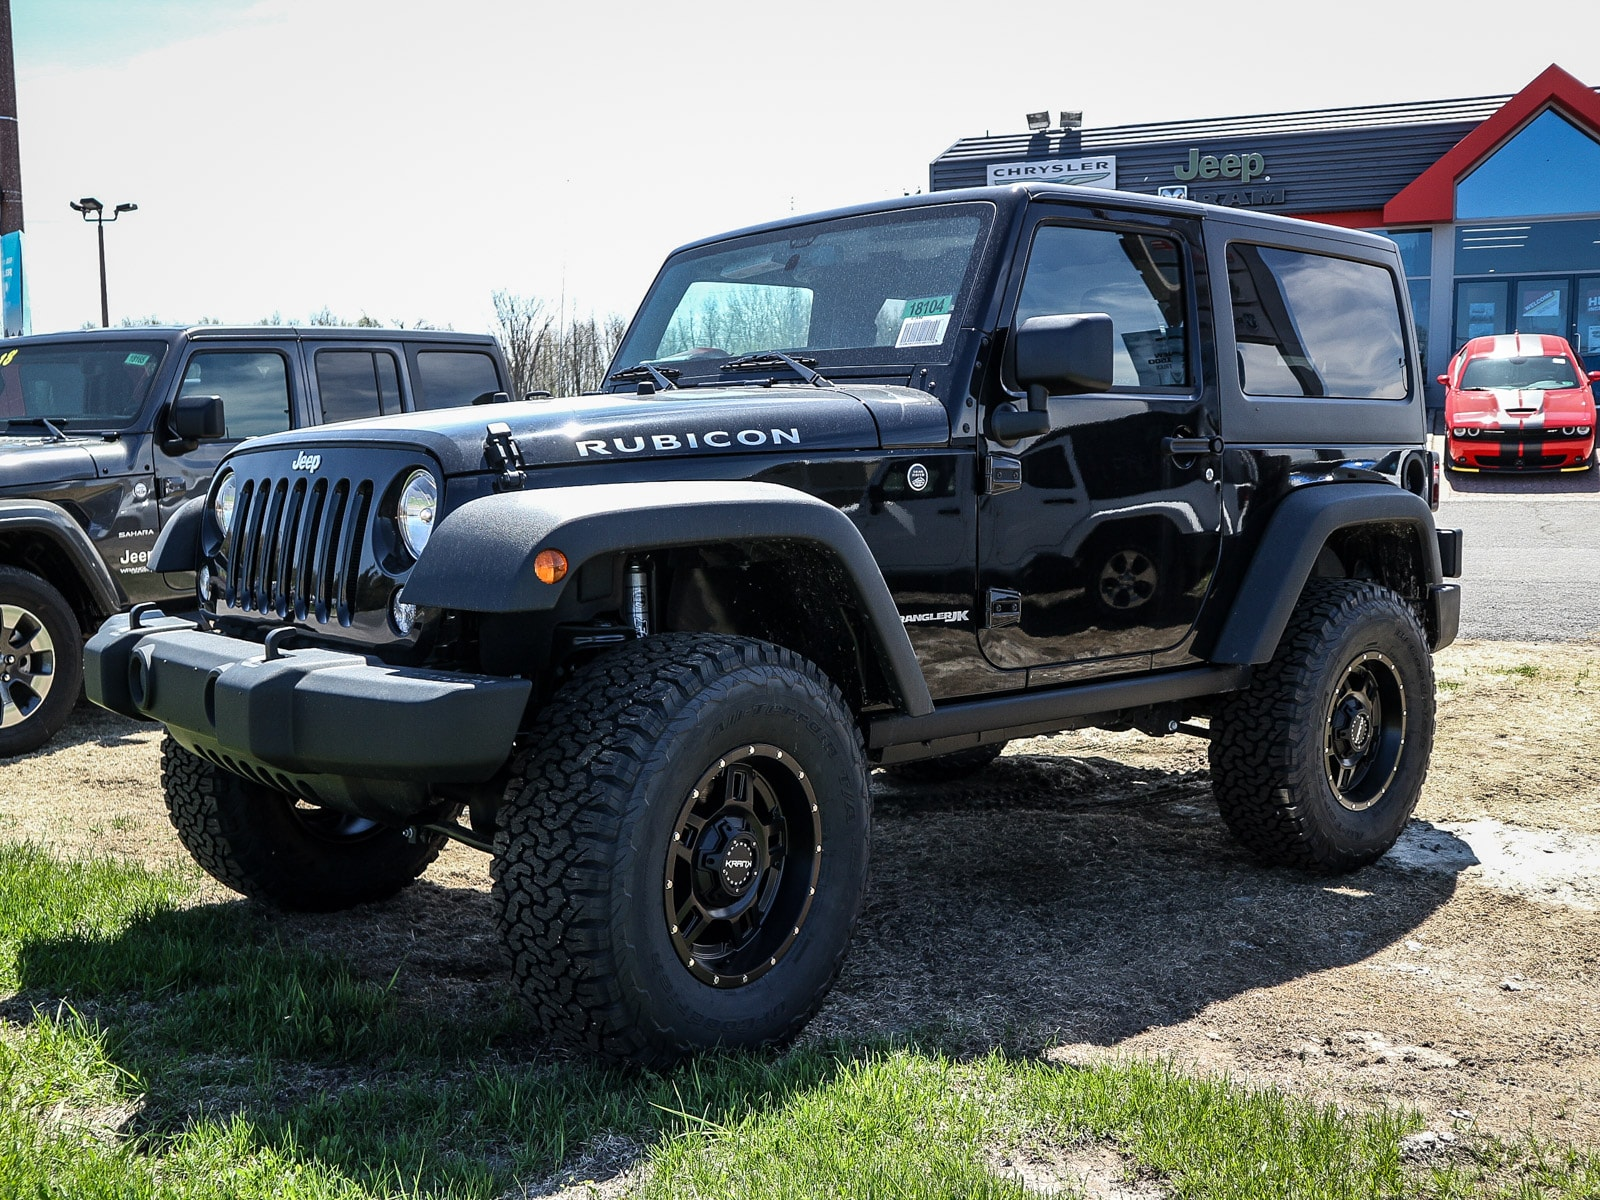 New 2018 Jeep Wrangler JK Rubicon + 2